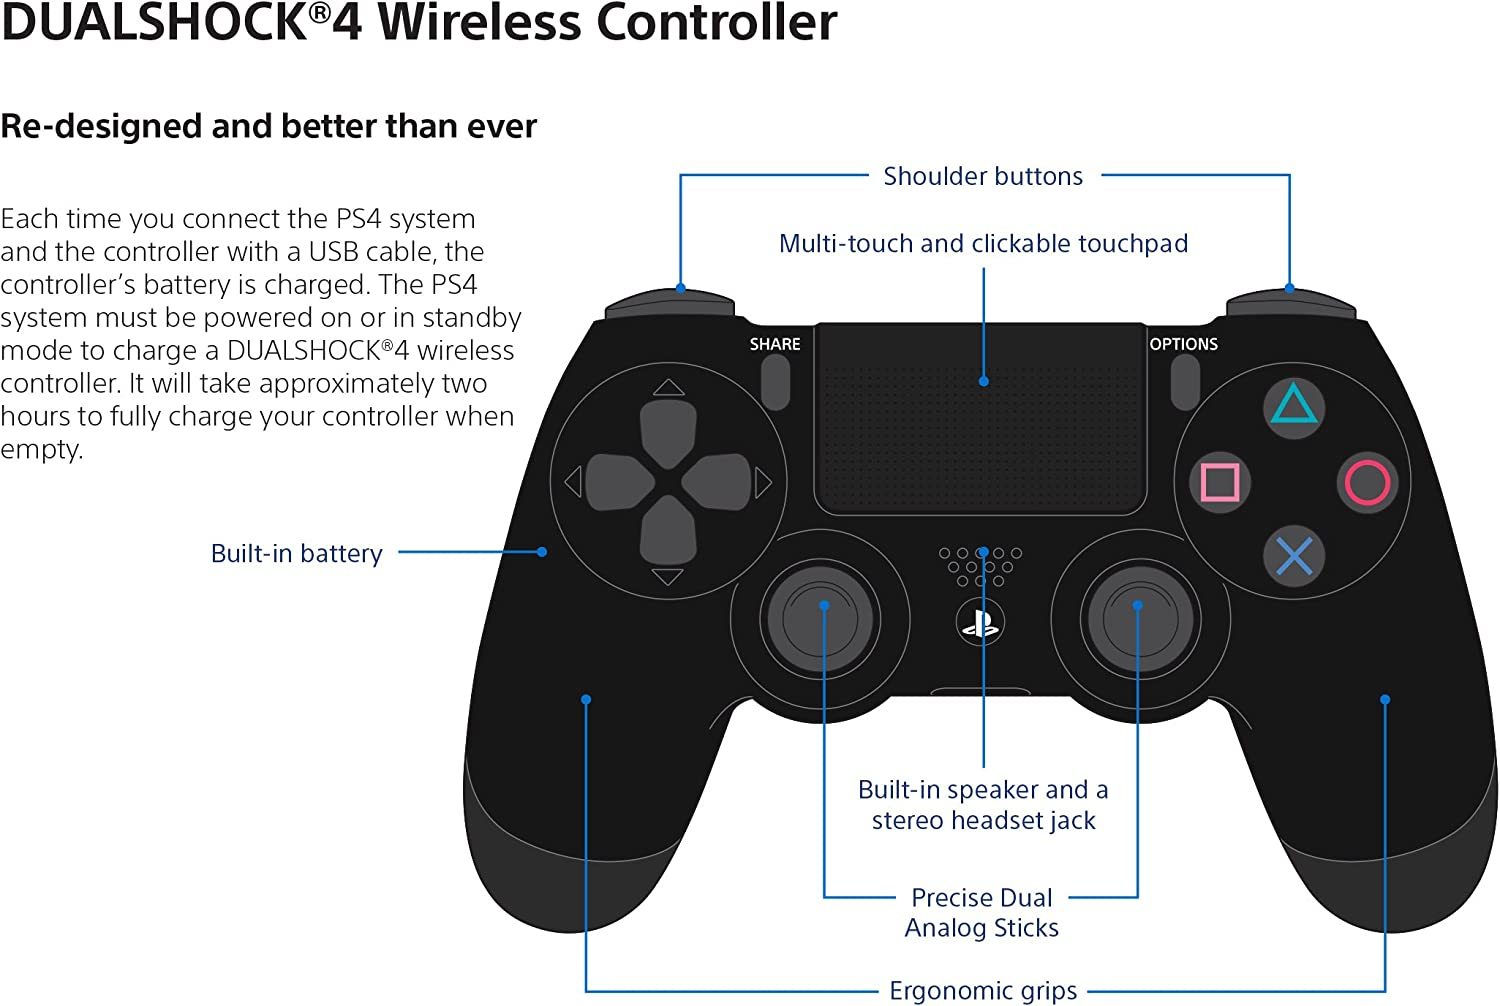 Amazon com: DualShock 4 Wireless Controller for PlayStation 4 - Jet